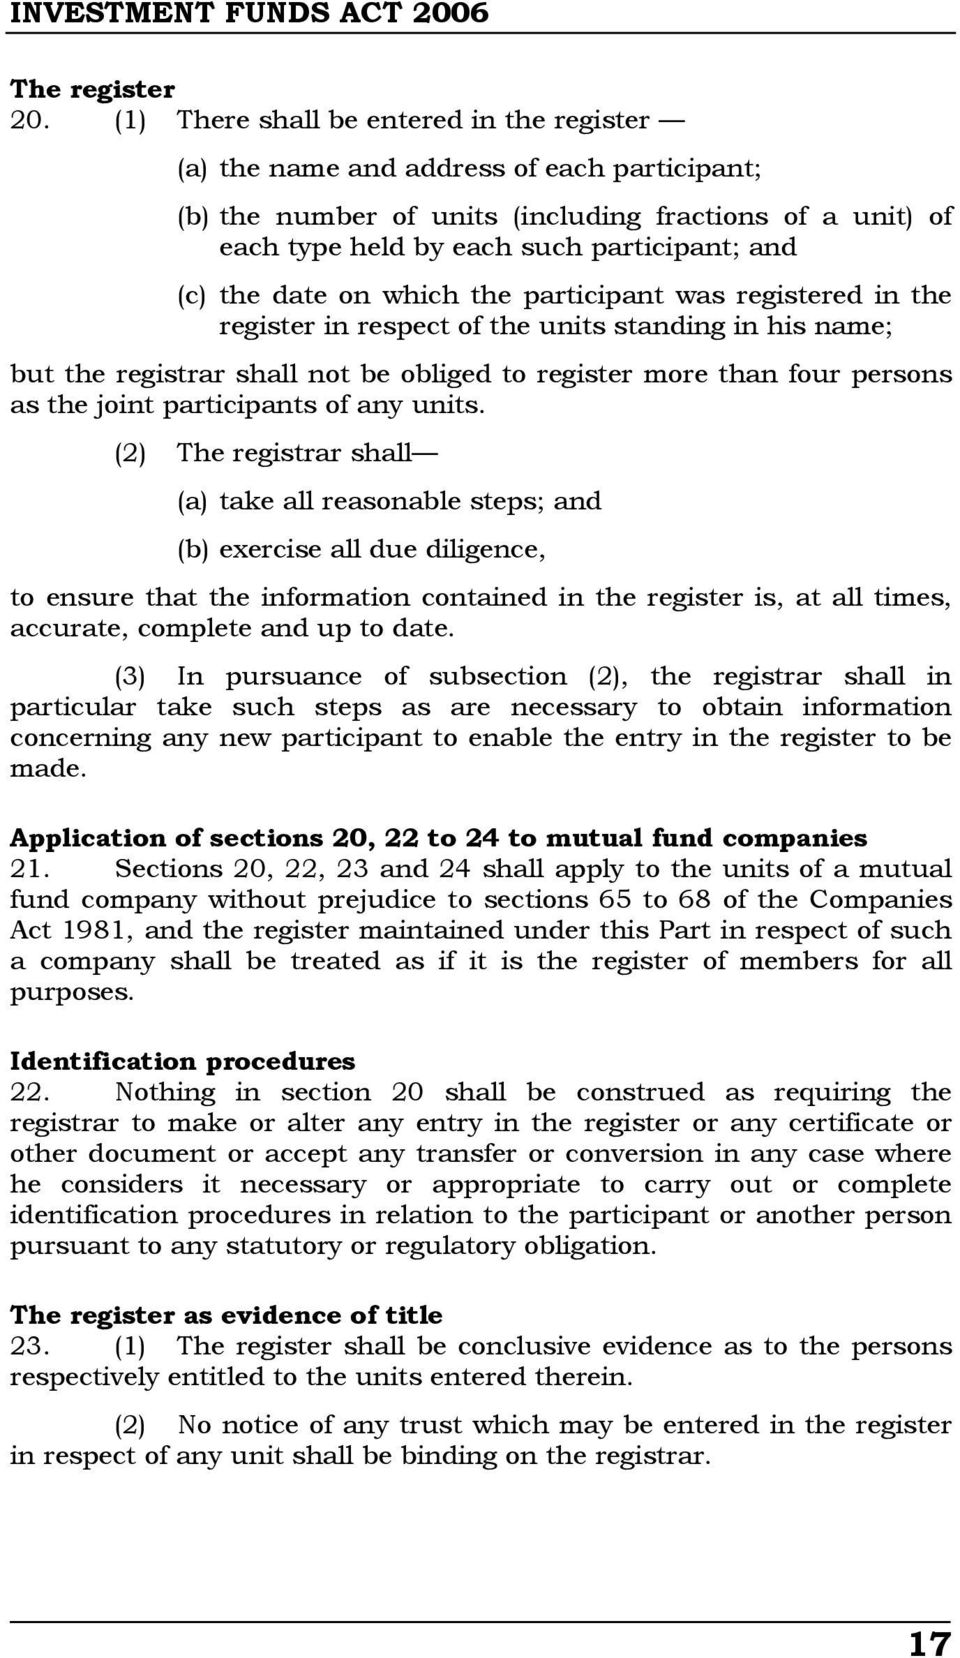 the date on which the participant was registered in the register in respect of the units standing in his name; but the registrar shall not be obliged to register more than four persons as the joint